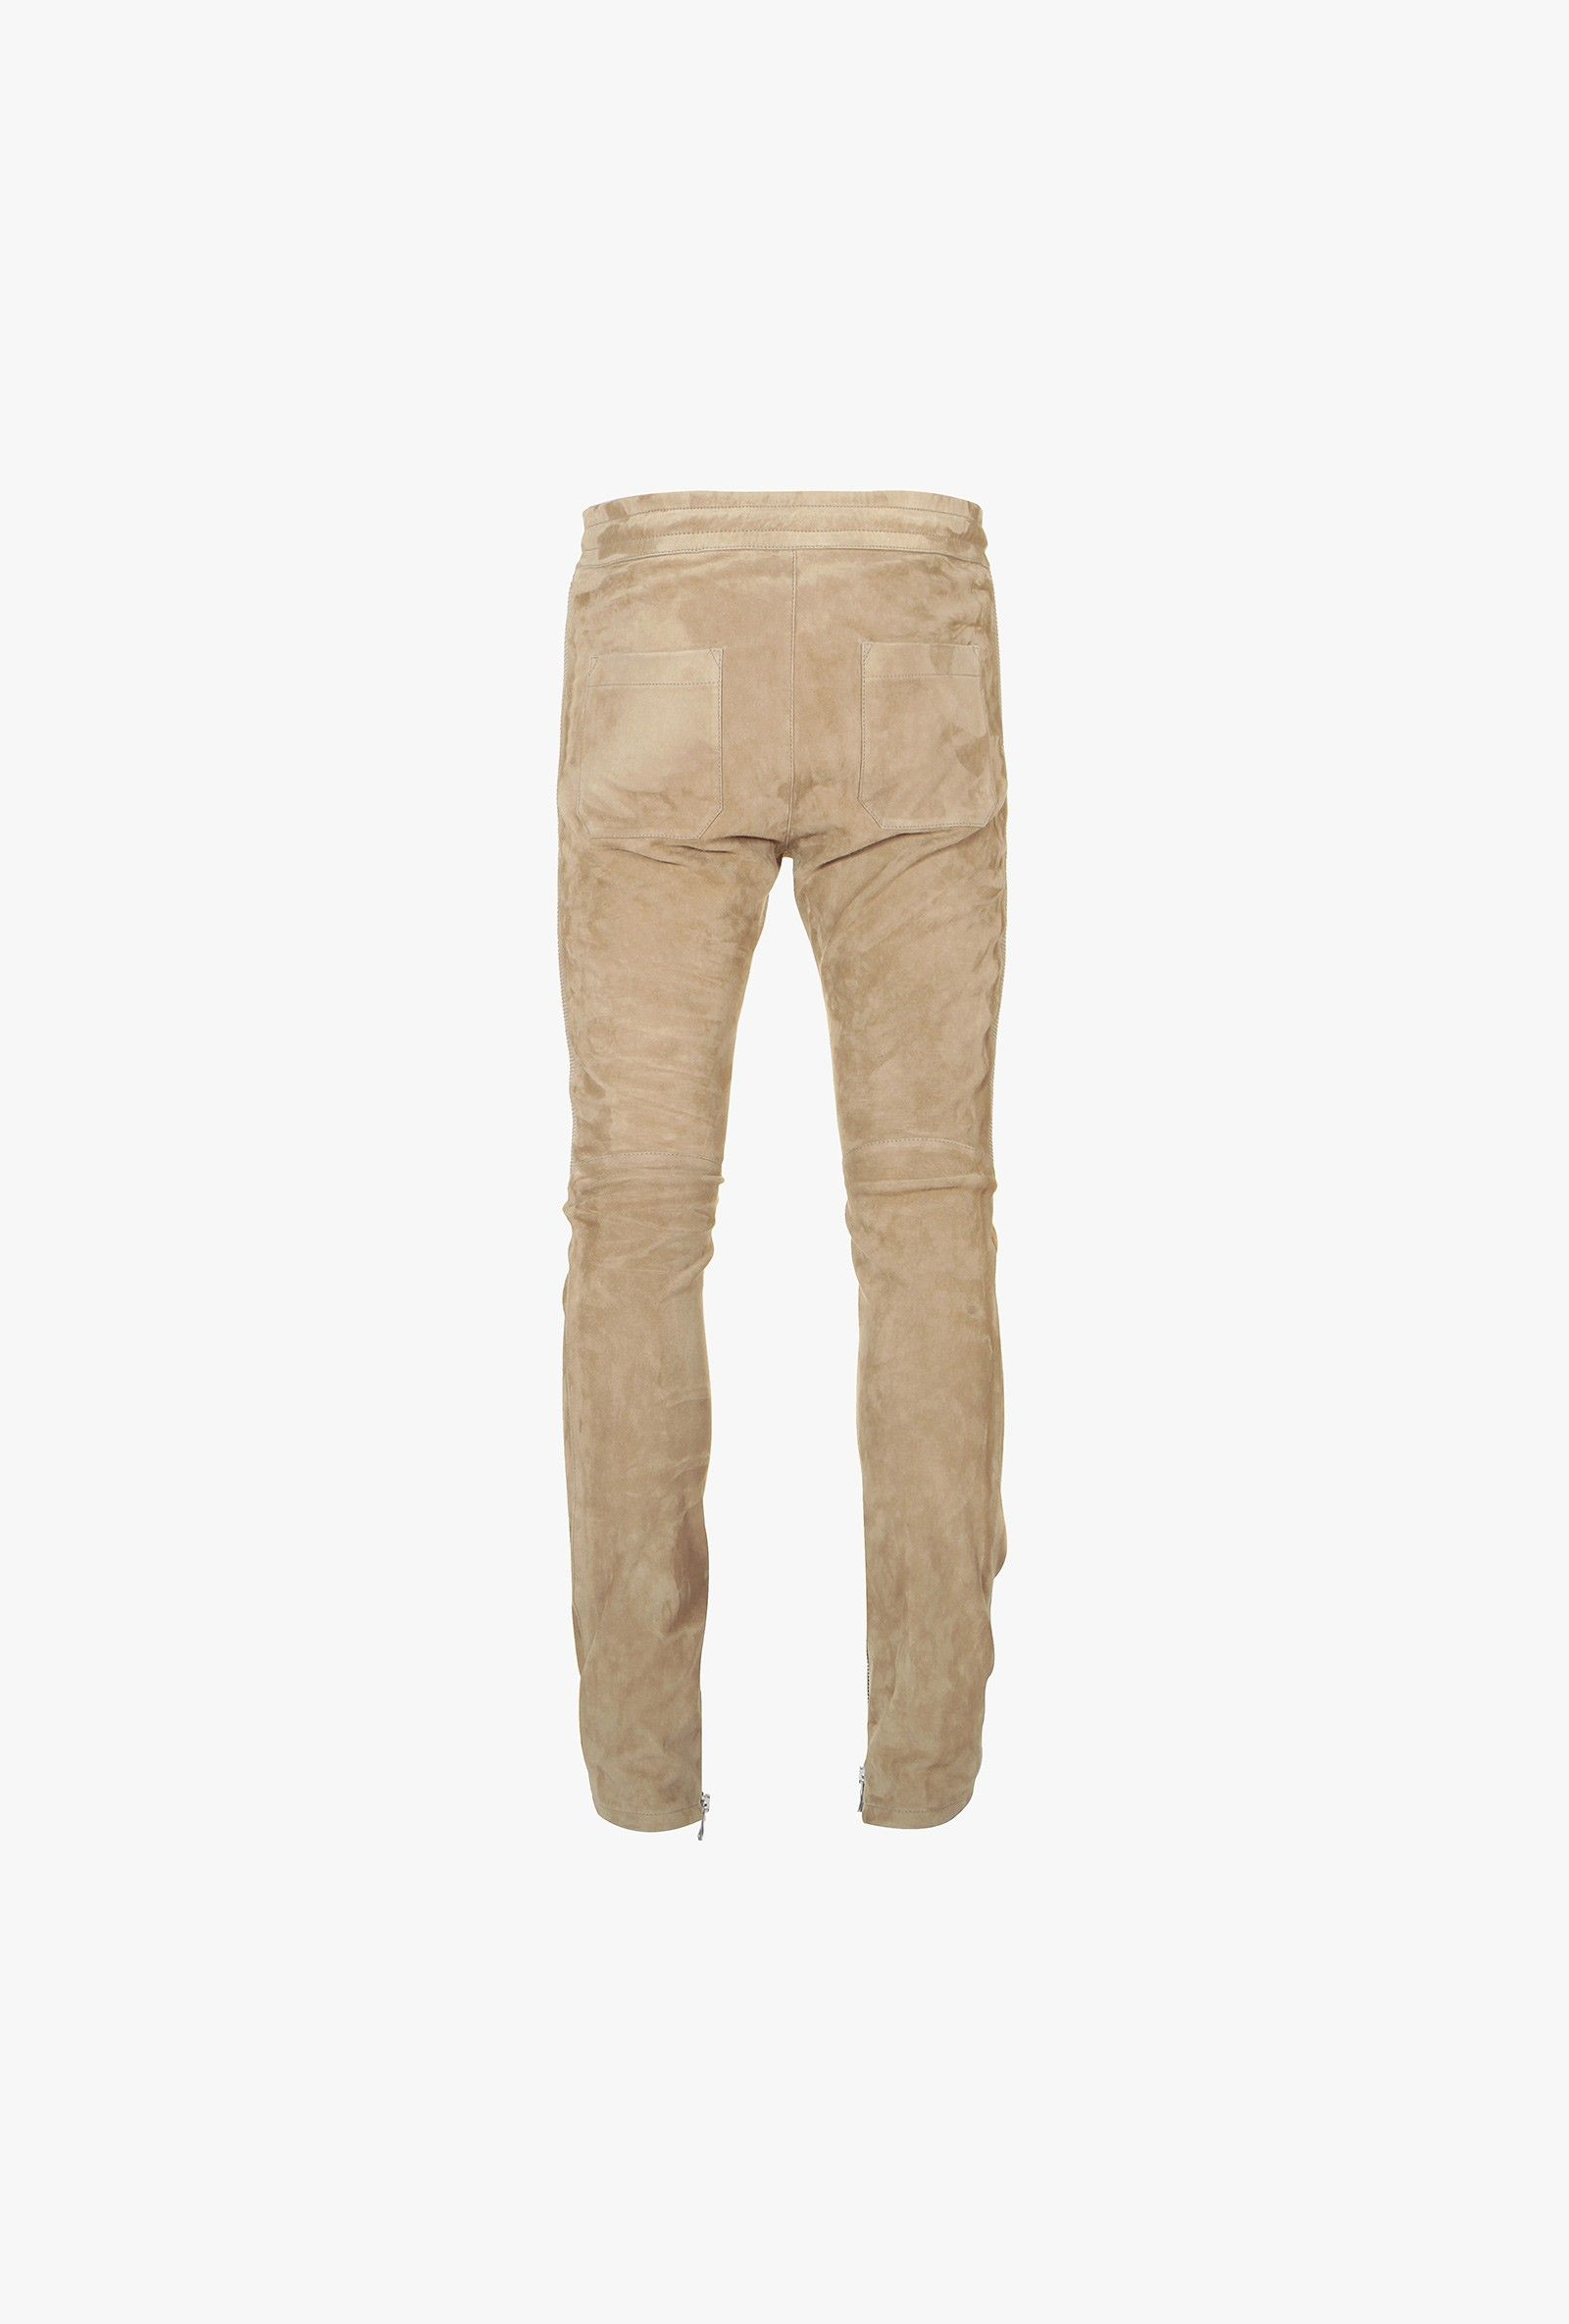 Balmain Slim fit biker style suede sweatpants Mens